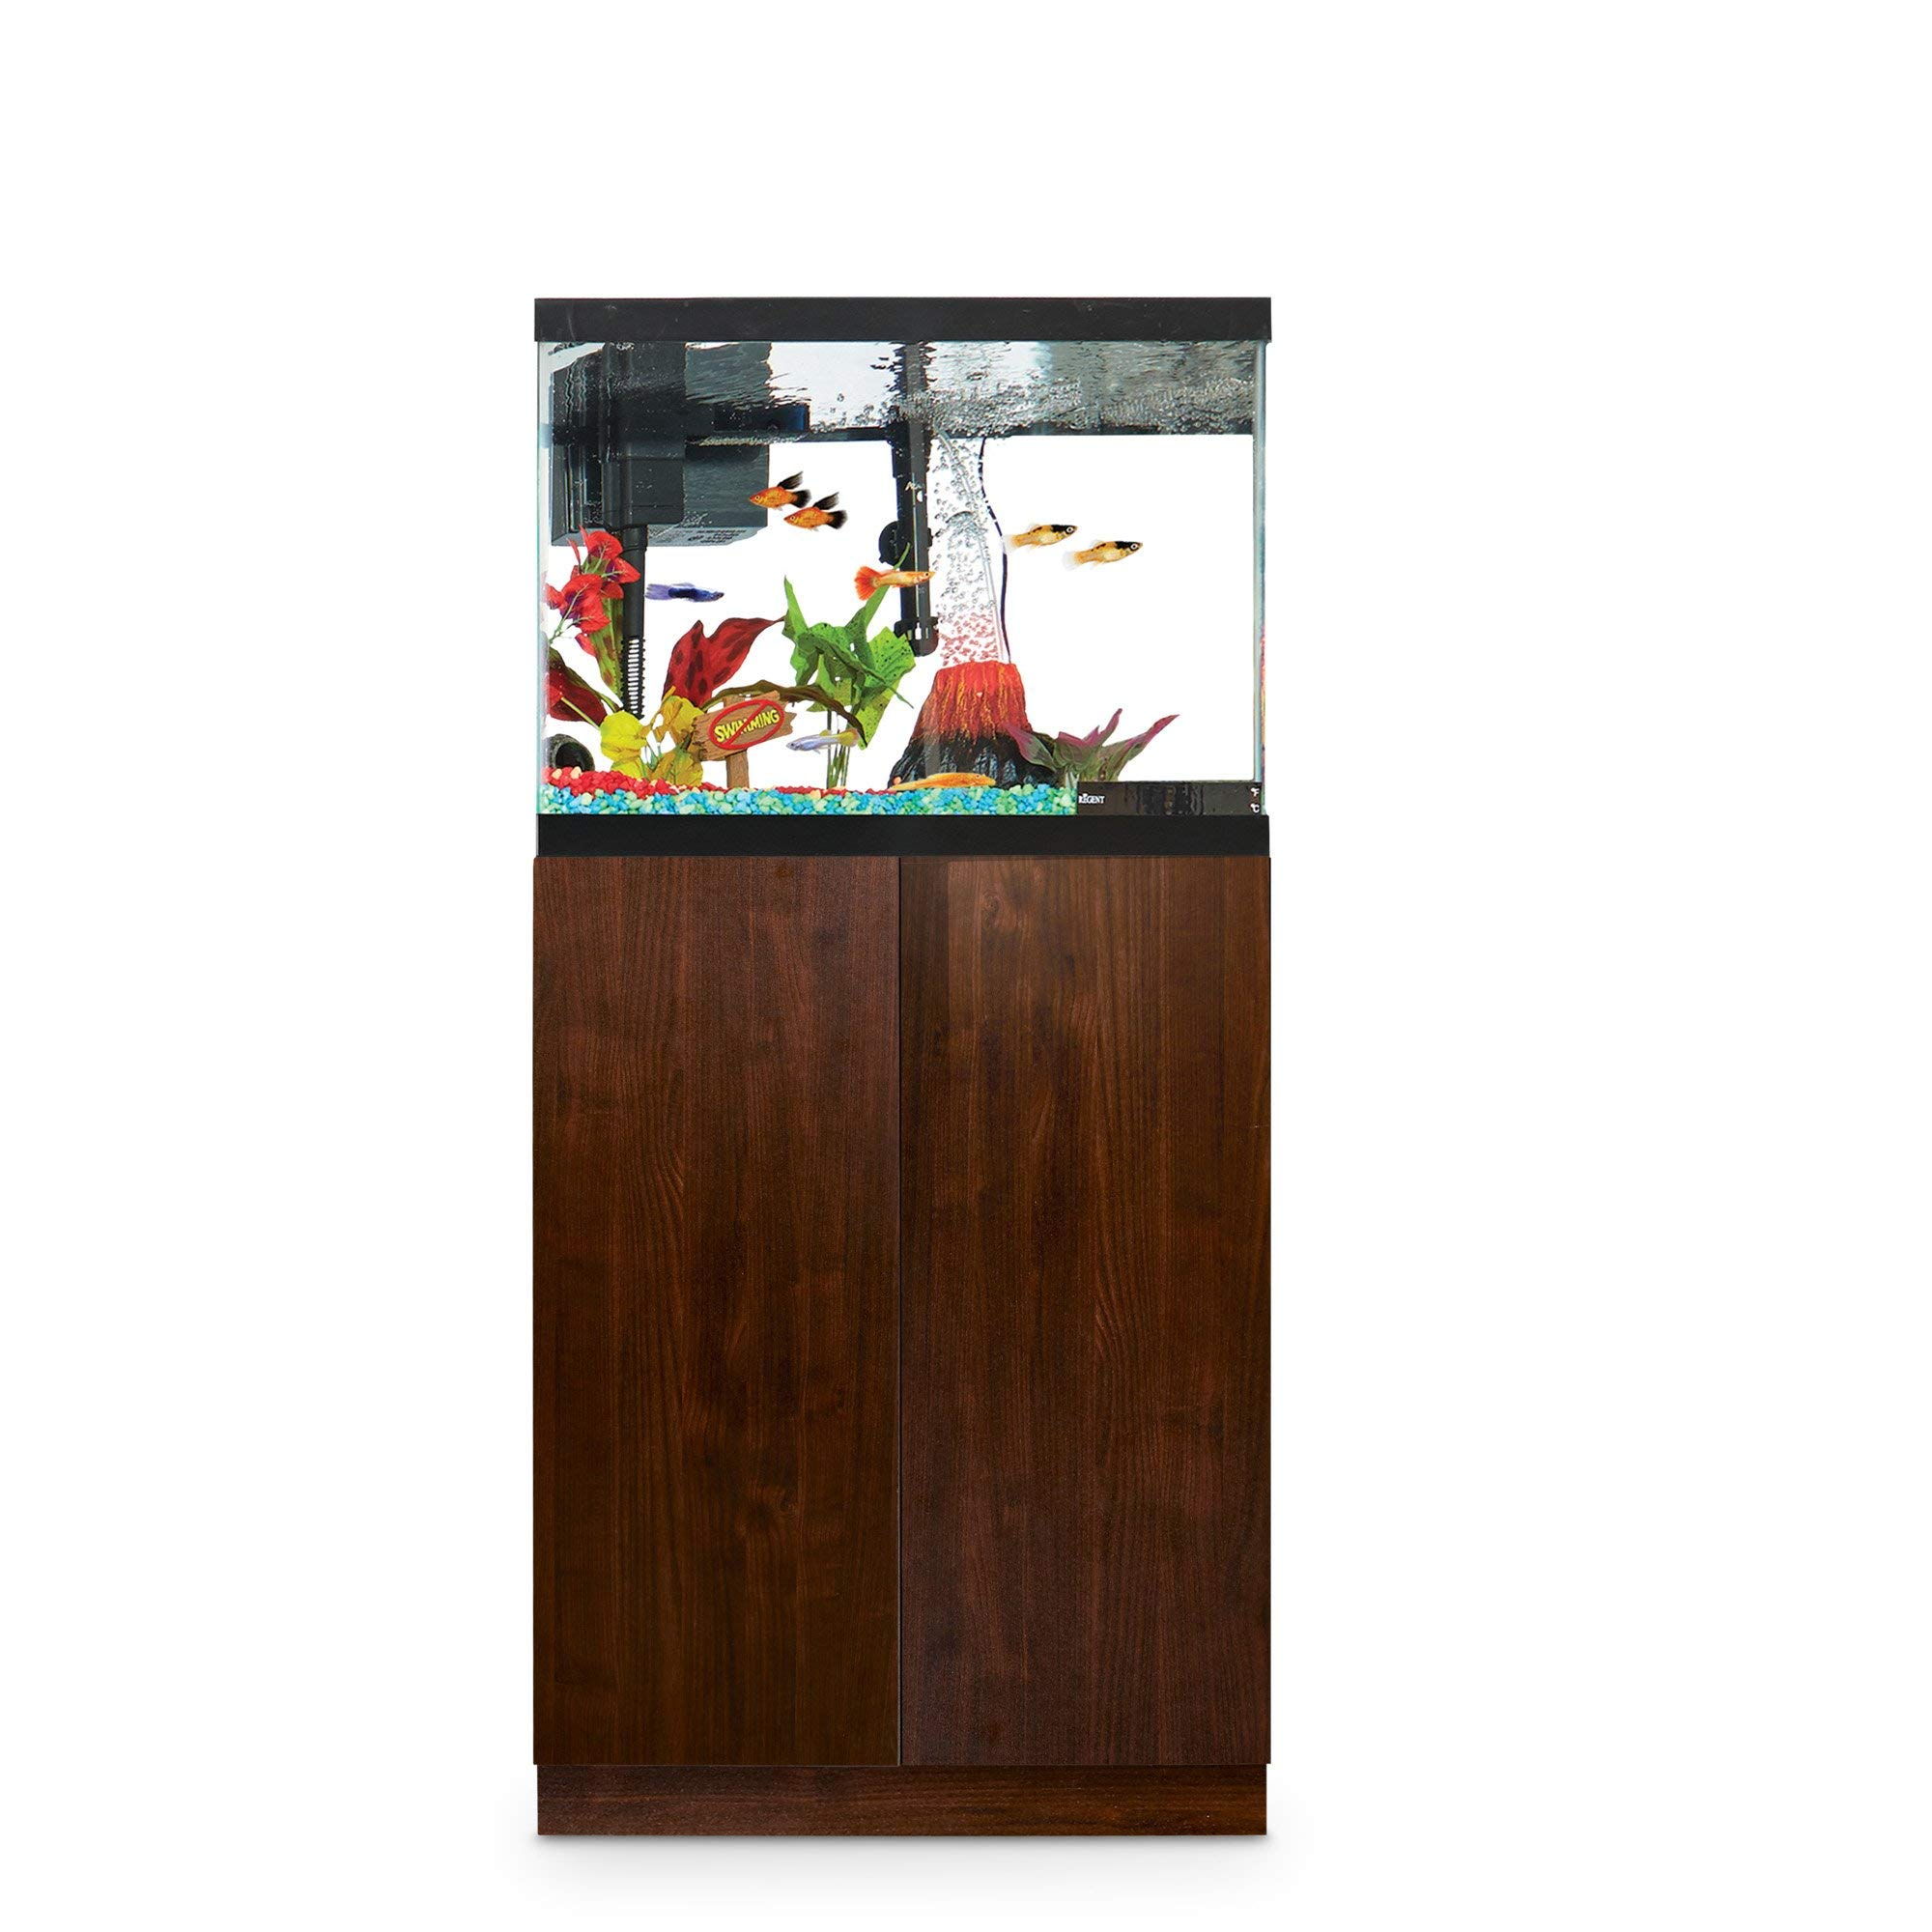 Imagitarium Faux Woodgrain Fish Tank Stand, Up to 20 Gal, 12.5 in, Natural Wood by Imagitarium